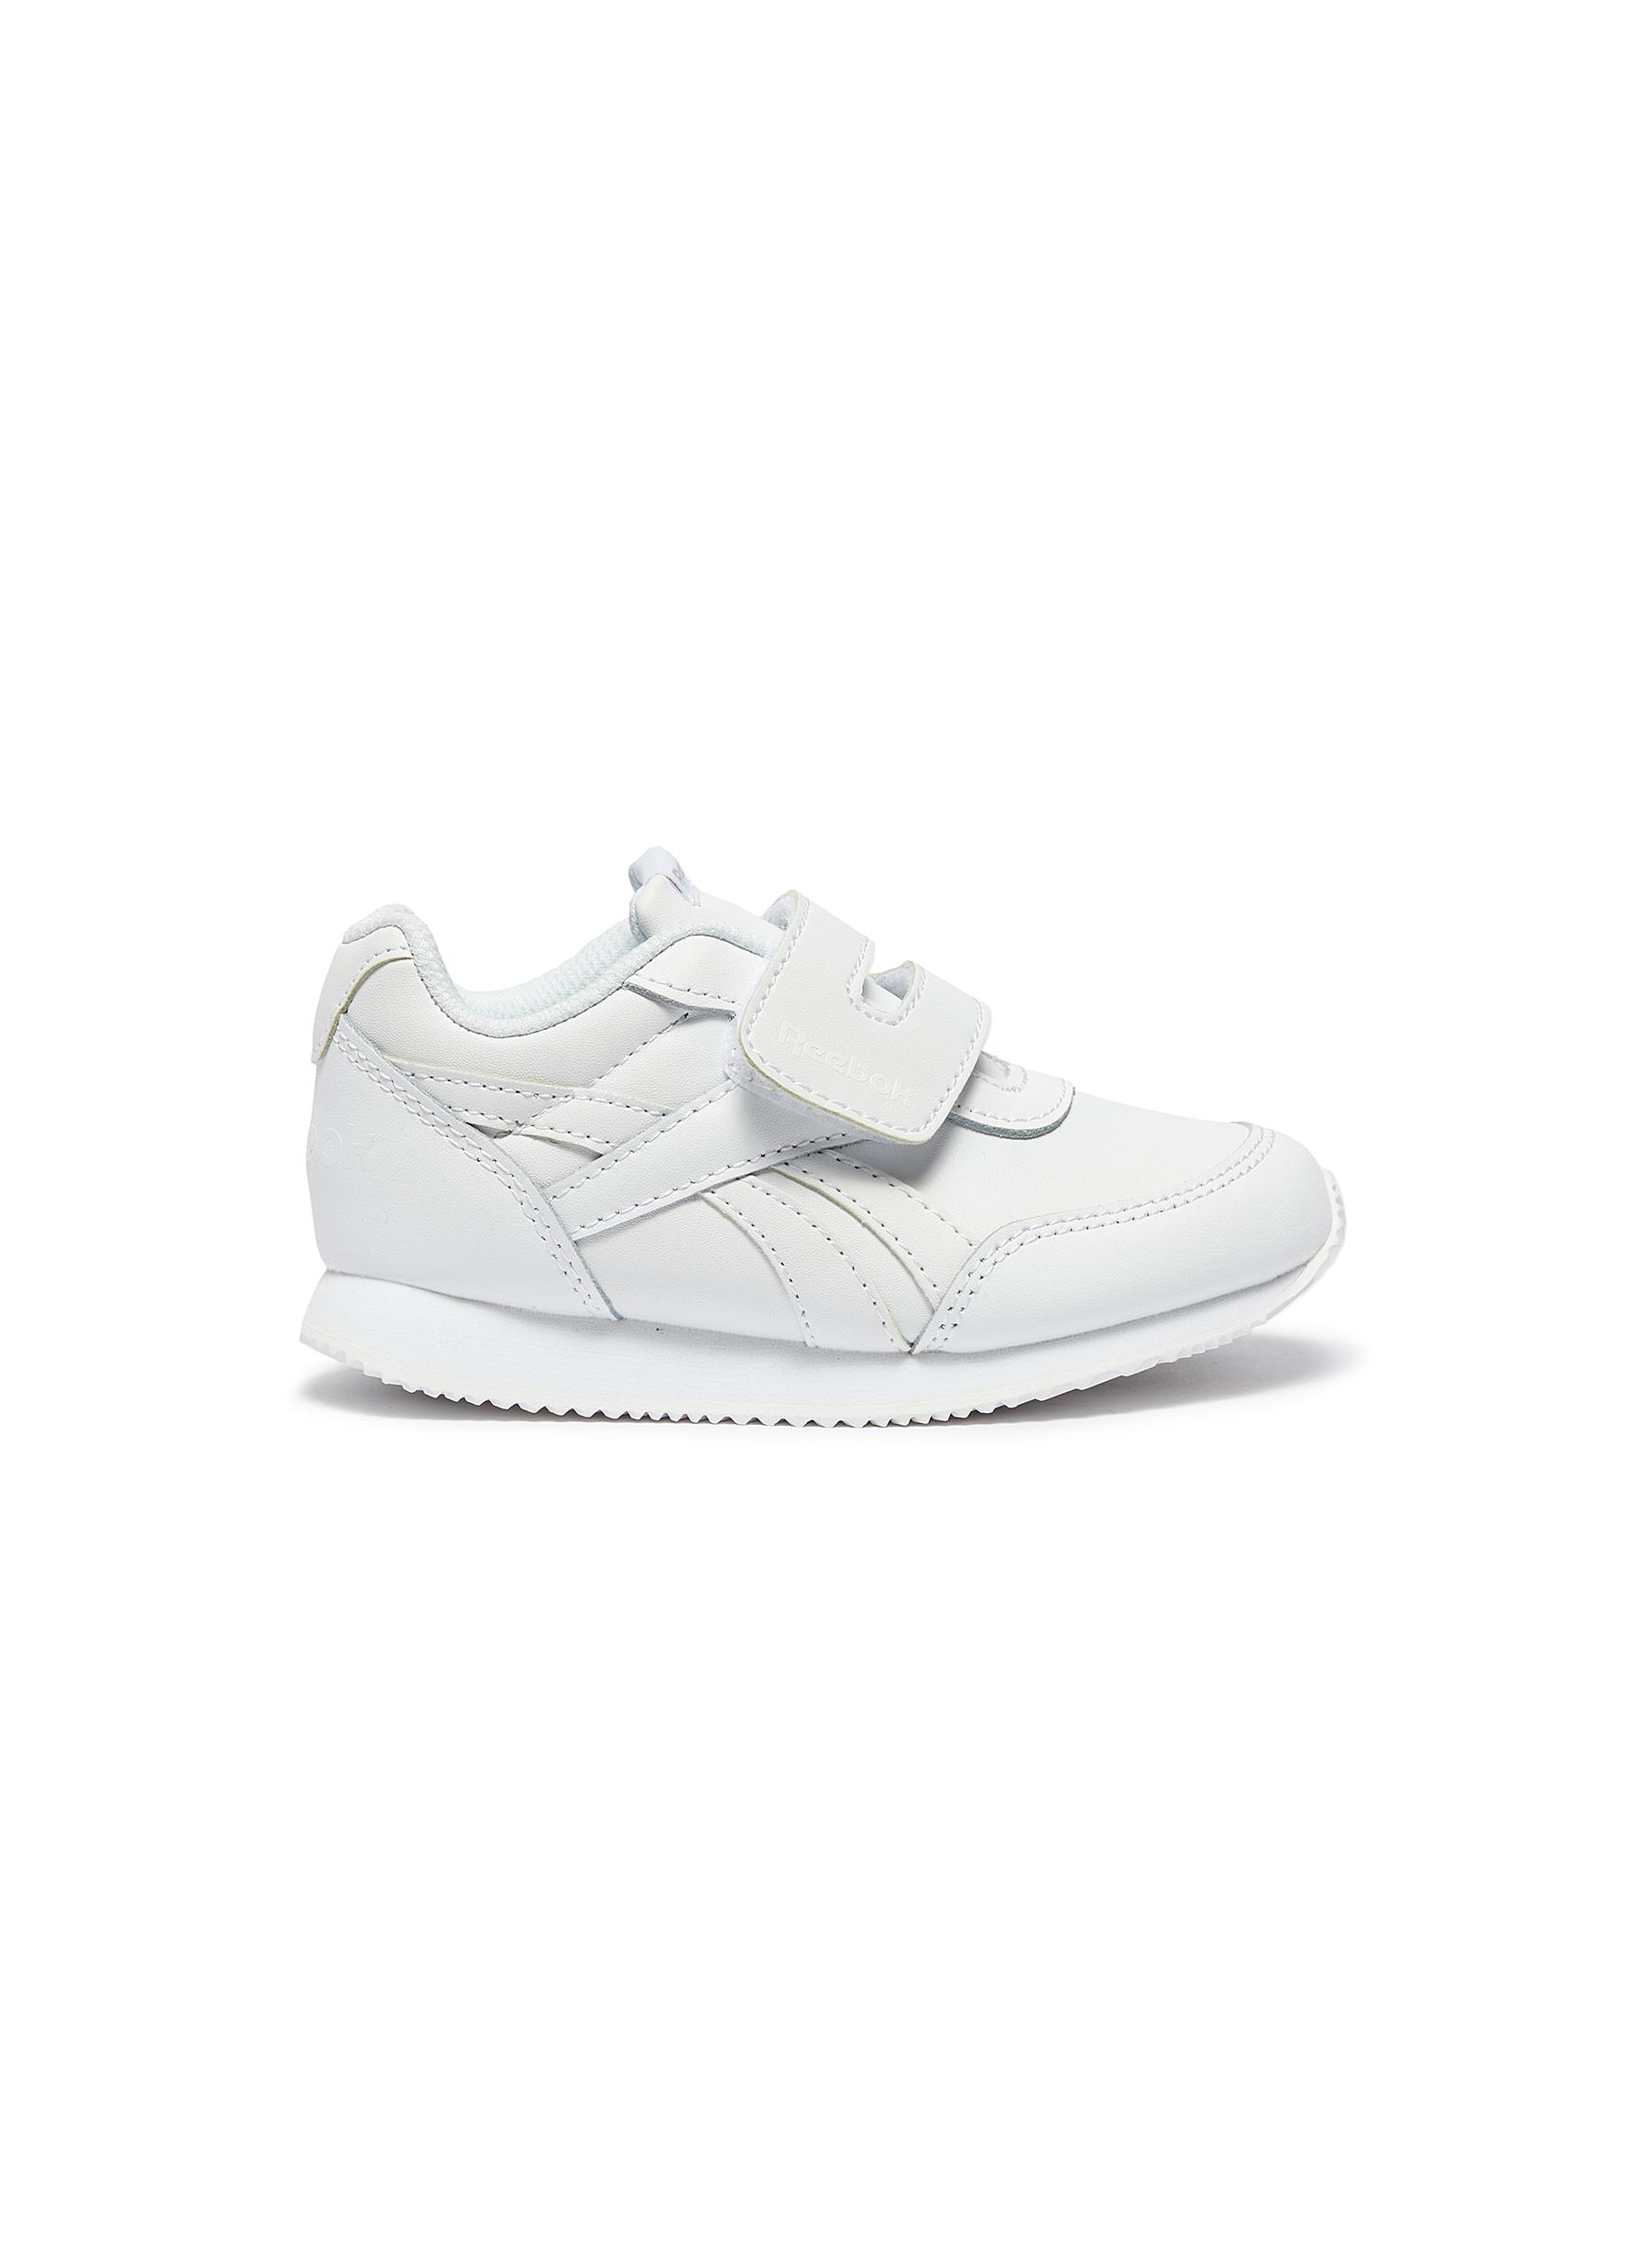 a9cc08ac274 Main View - Click To Enlarge - REEBOK - 'Royal Classic Jogger 2.0' leather